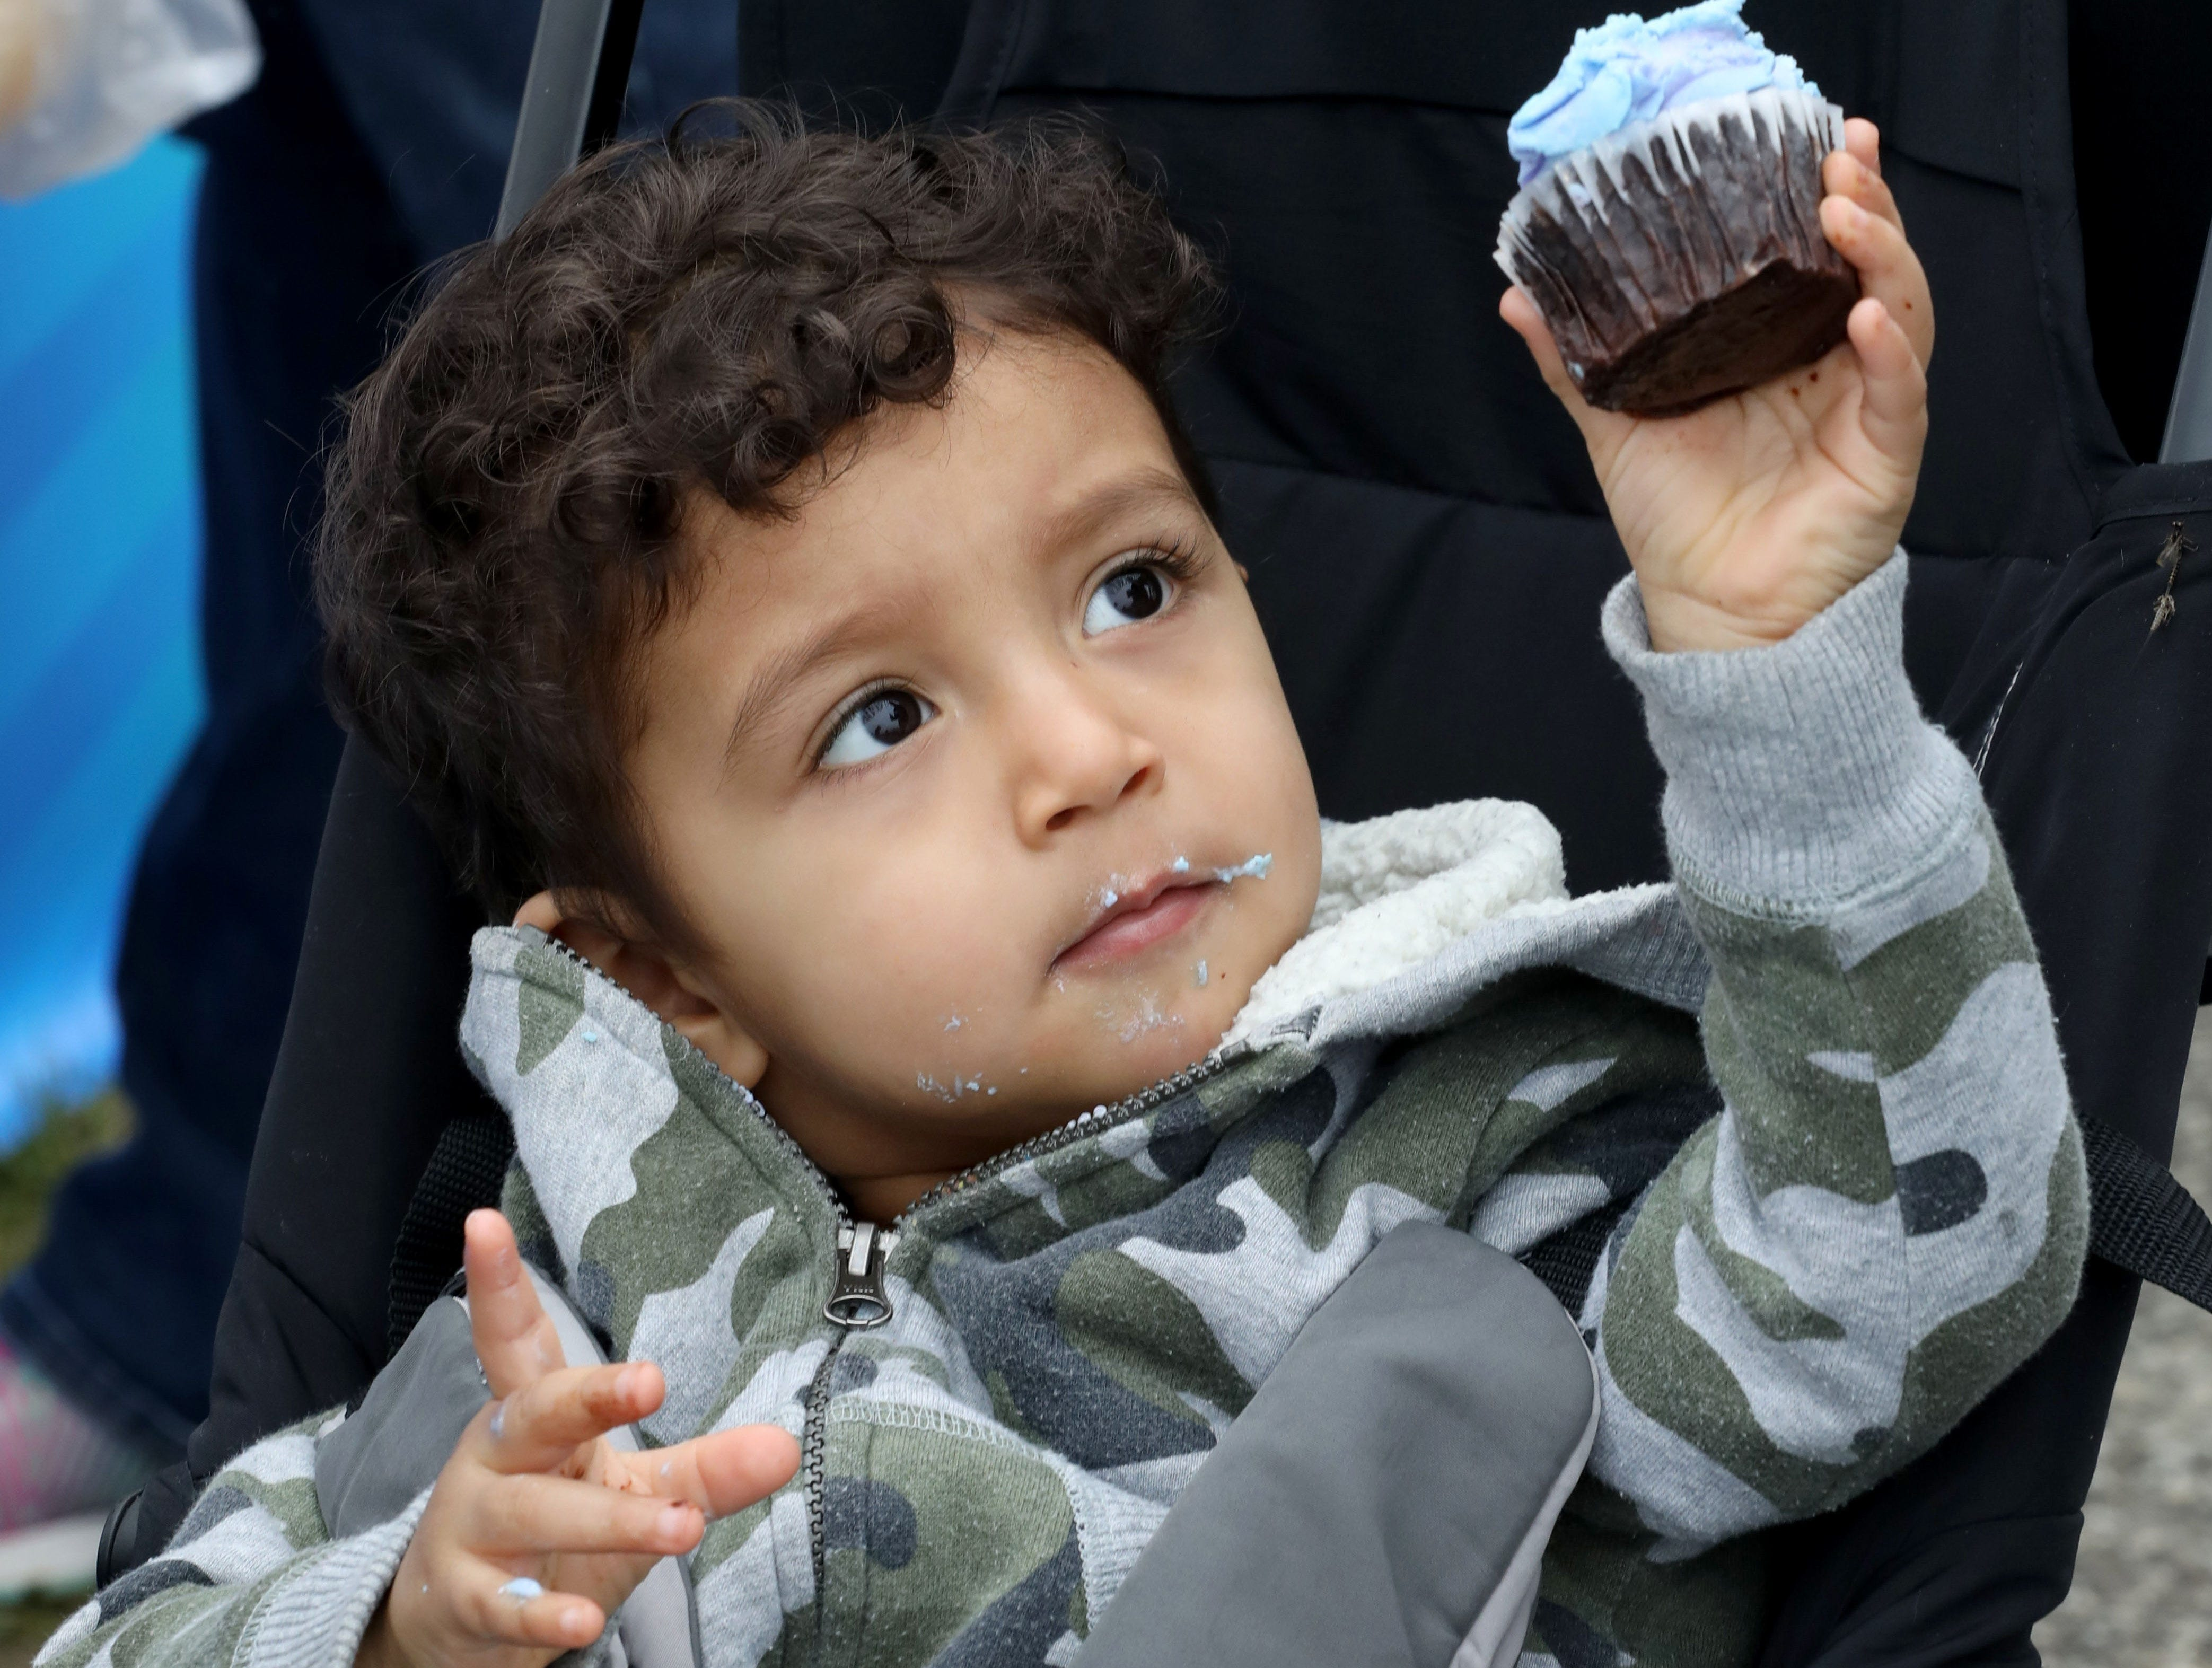 Asher Rodriguez, 2 from Newburgh, holds up his cupcake during the K104.7 Cupcake Festival at the Stormville Airport, May 4, 2019.